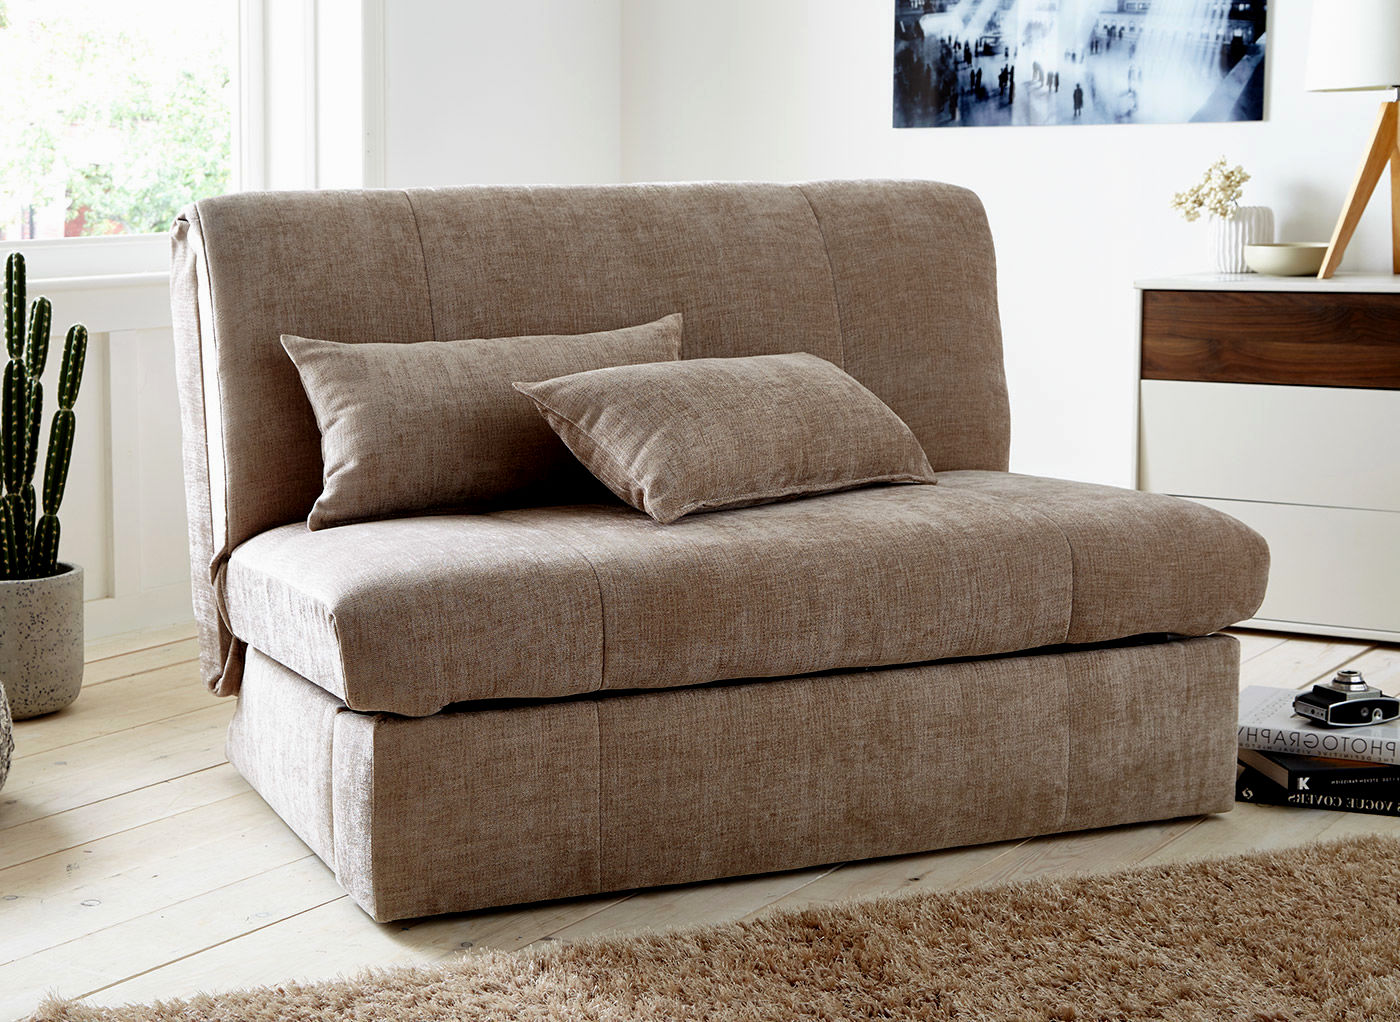 beautiful kebo futon sofa bed concept-Stunning Kebo Futon sofa Bed Image